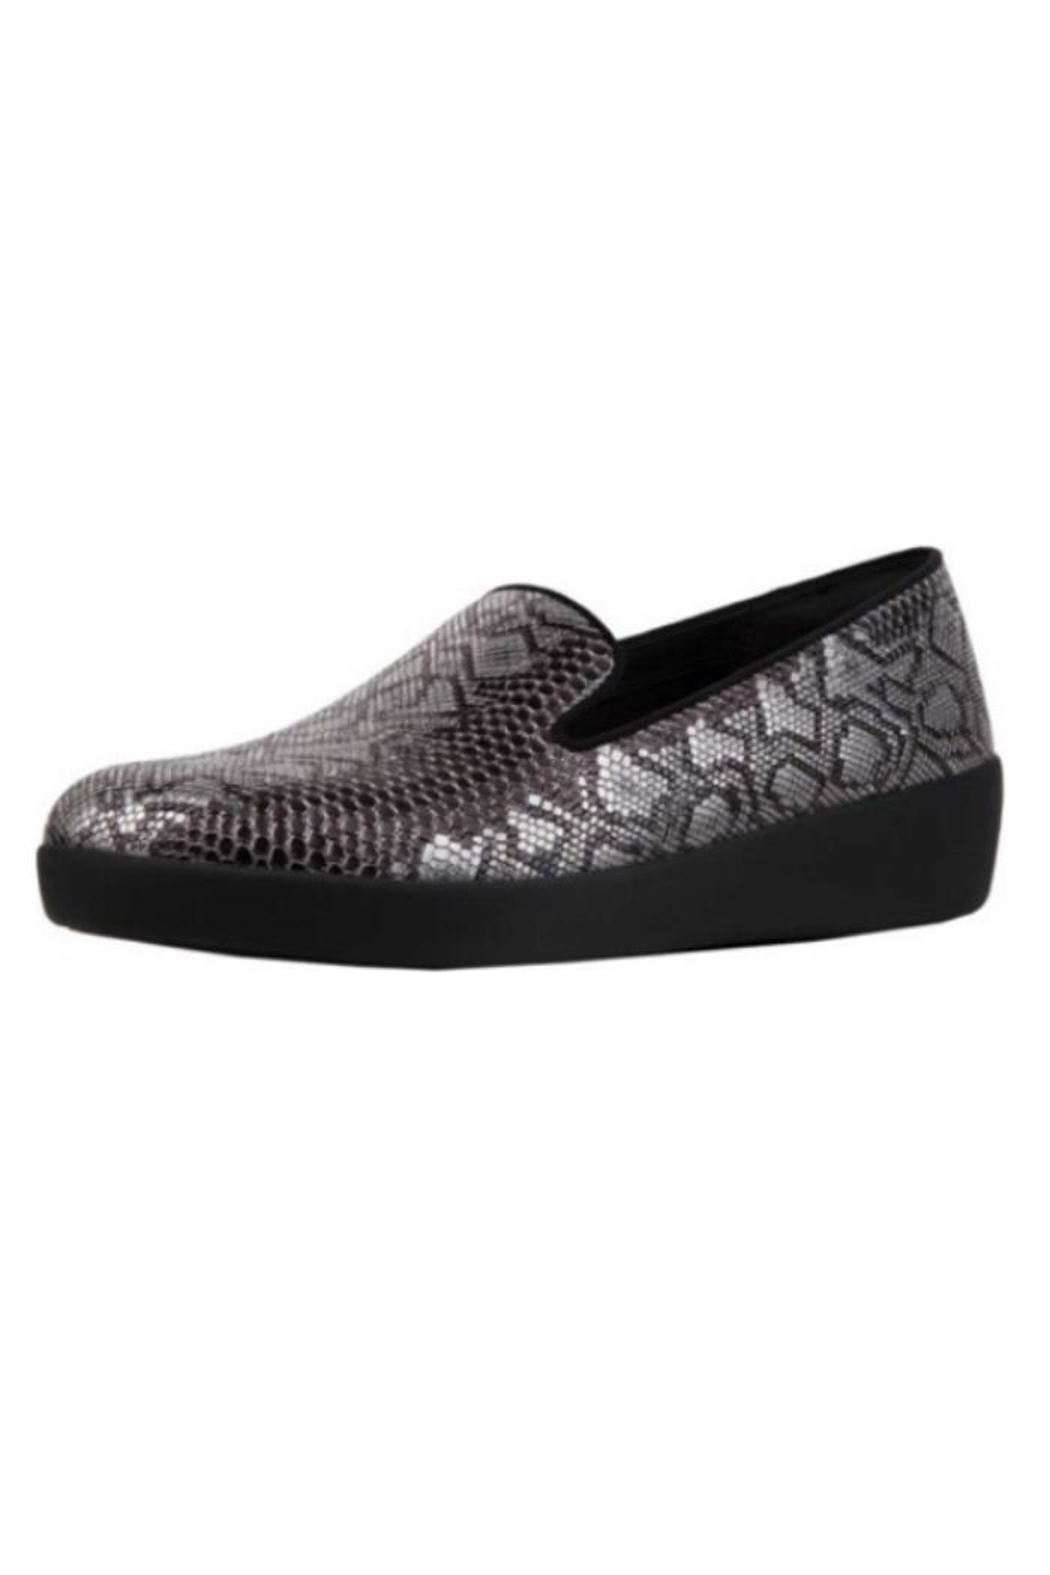 407464c64e70 Fitflop Audrey Python from Philadelphia by Hot Foot Boutique ...